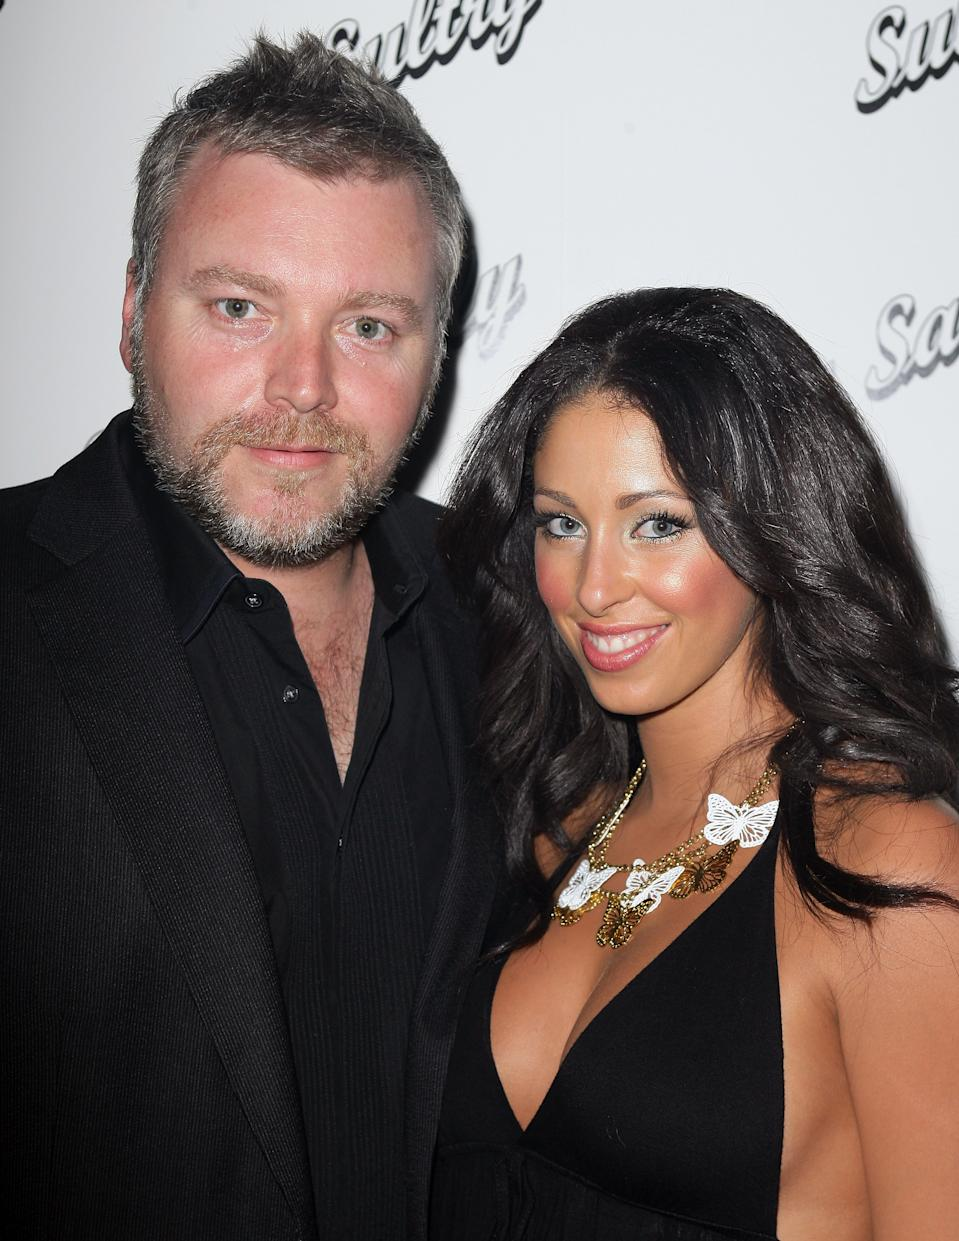 Kyle Sandilands and Tamara Jaber pose on the red carpet.